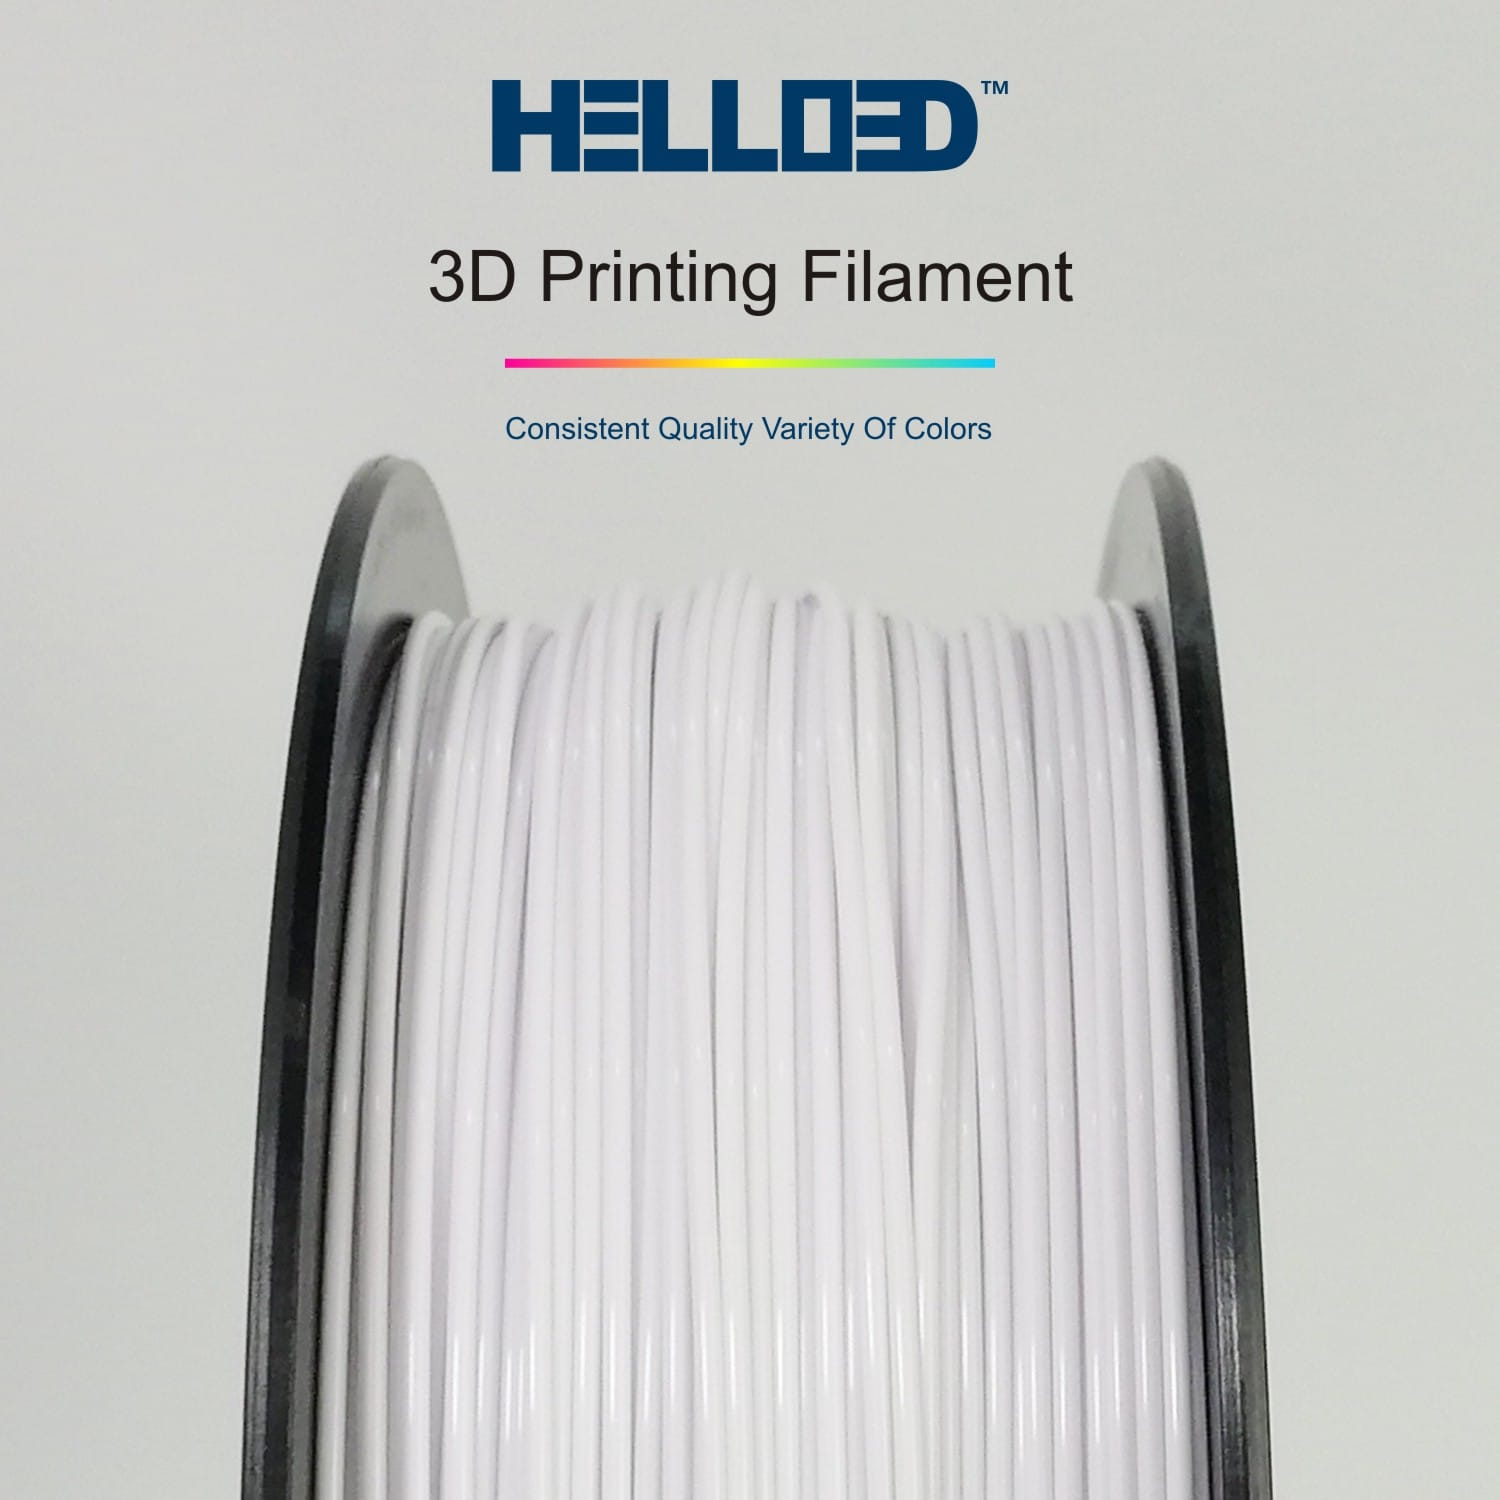 HELLO3D 3D Printer Filament - PLA - 1.75mm - White 01 - 1Kg